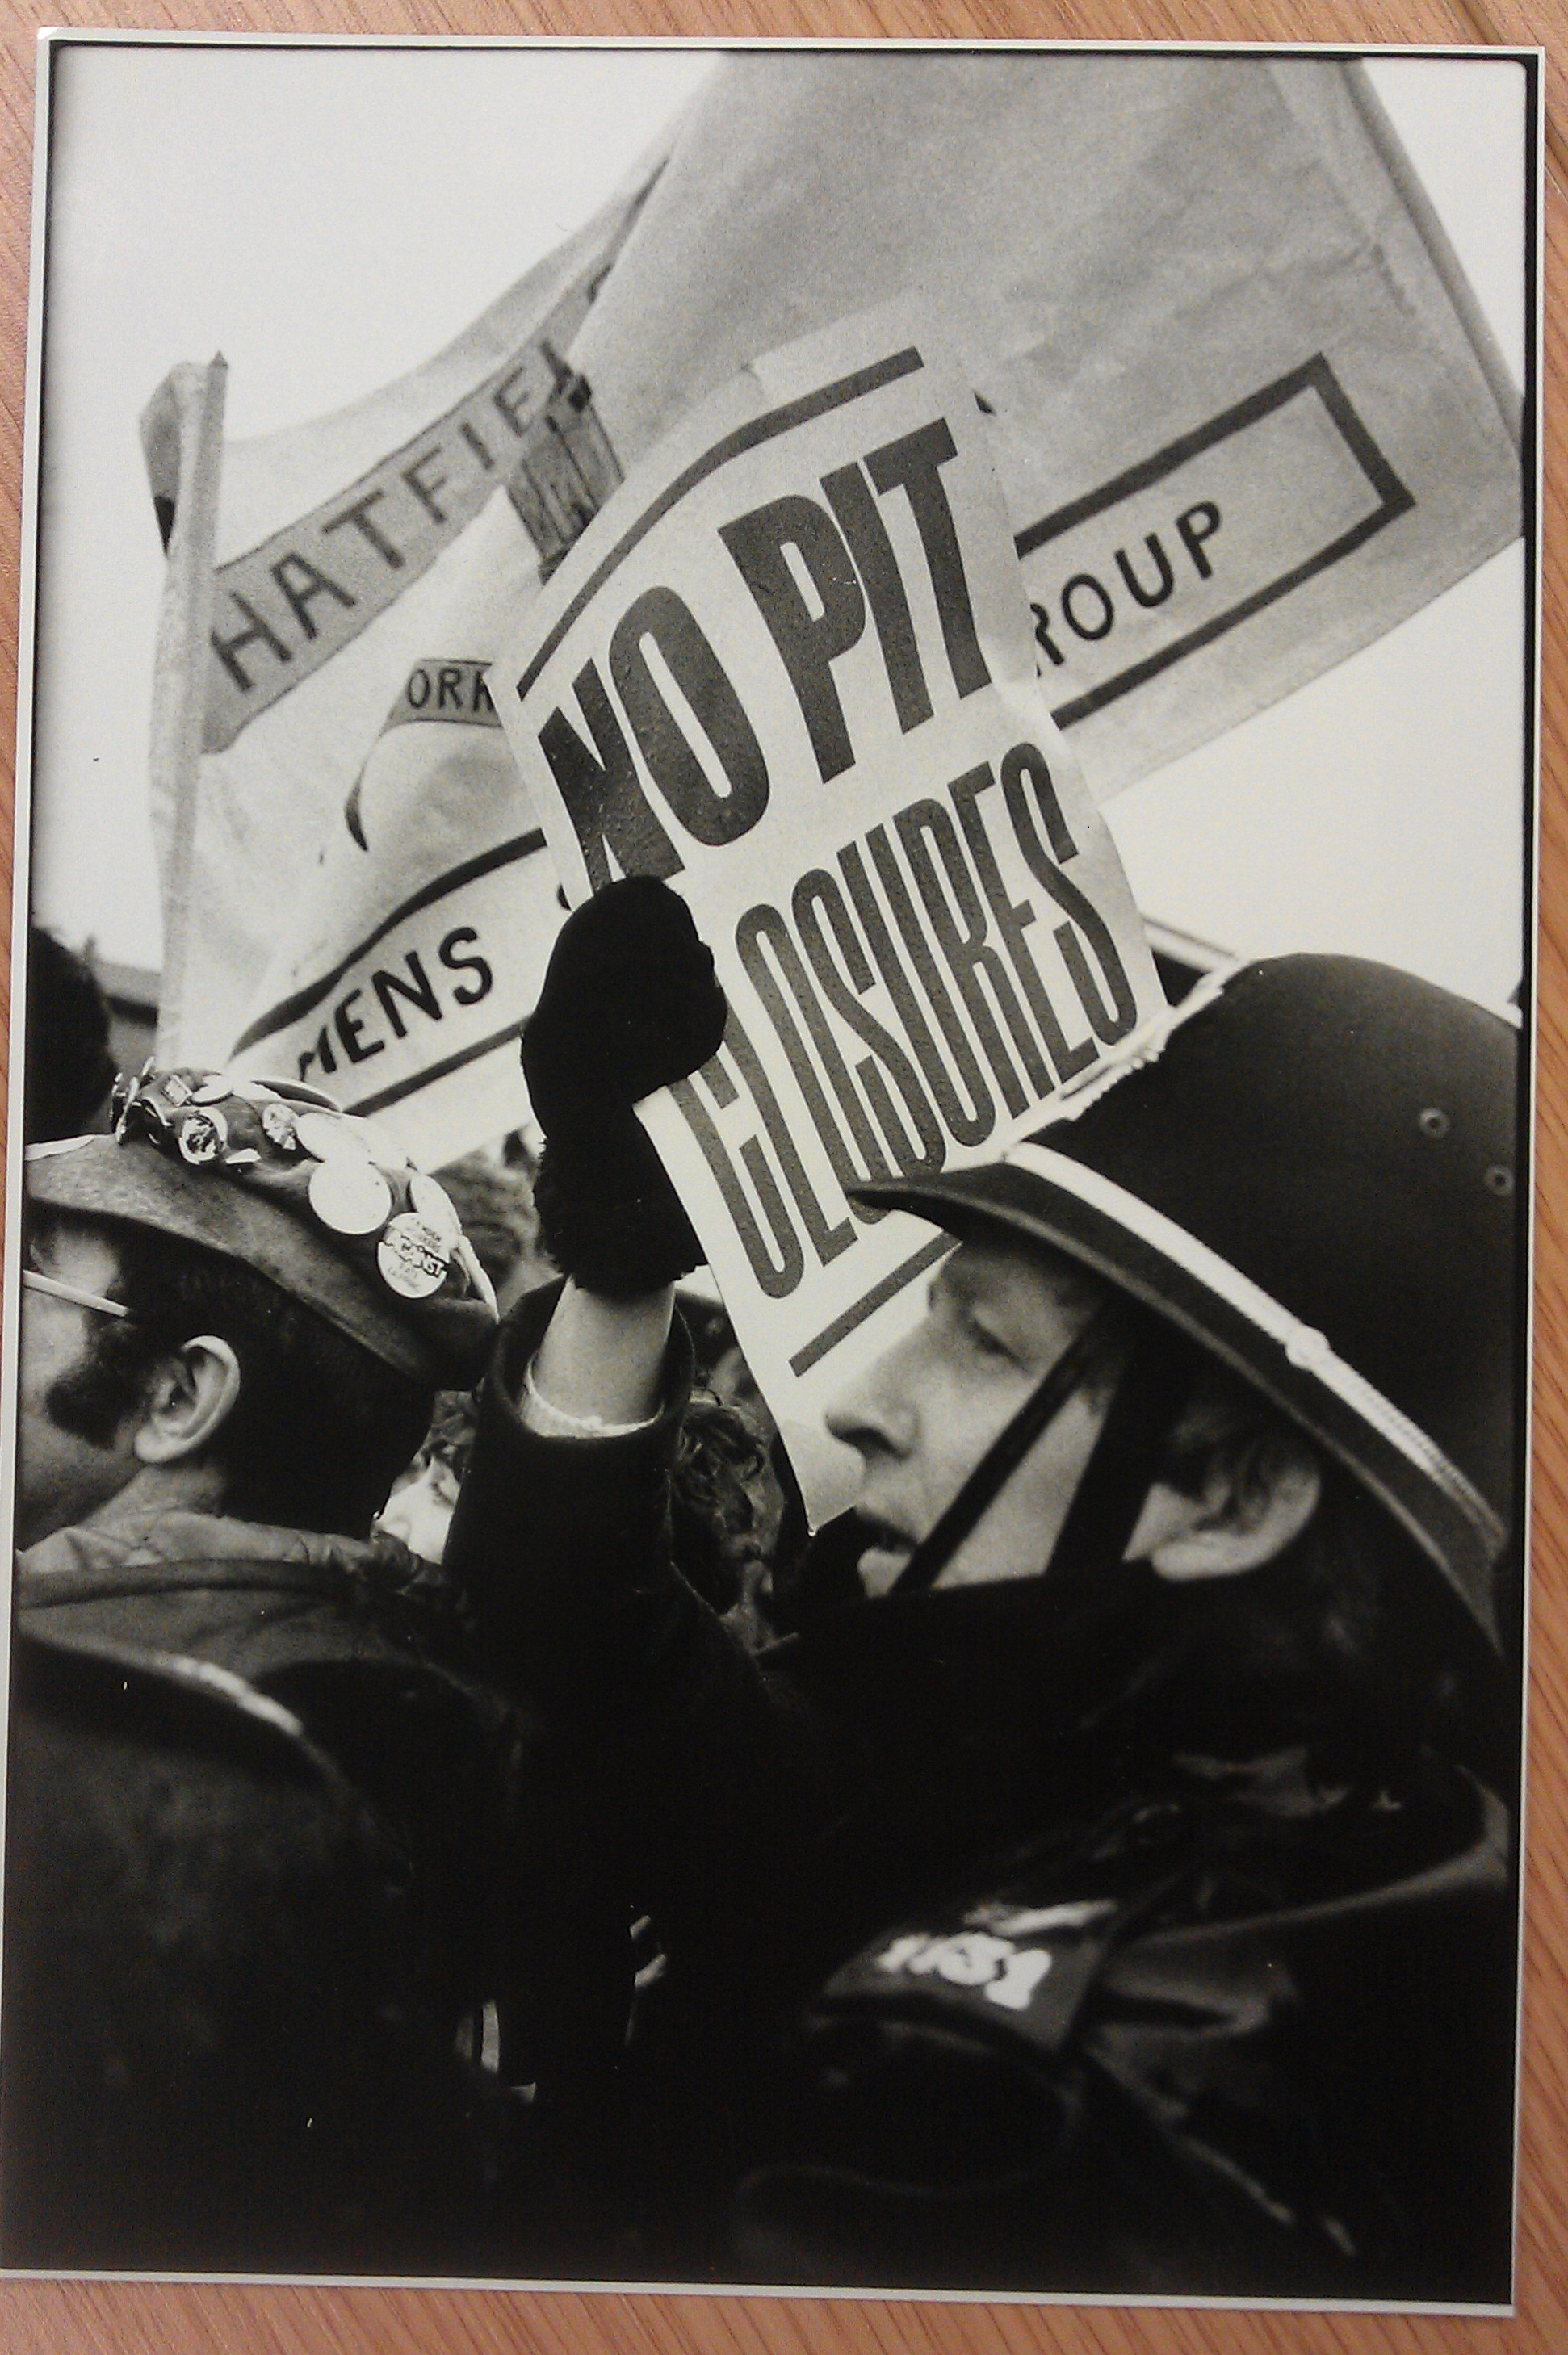 Image from Undermined? : Britain and the miners' strike by Martin Jenkinson, John Harris and John Sturrock (1994)